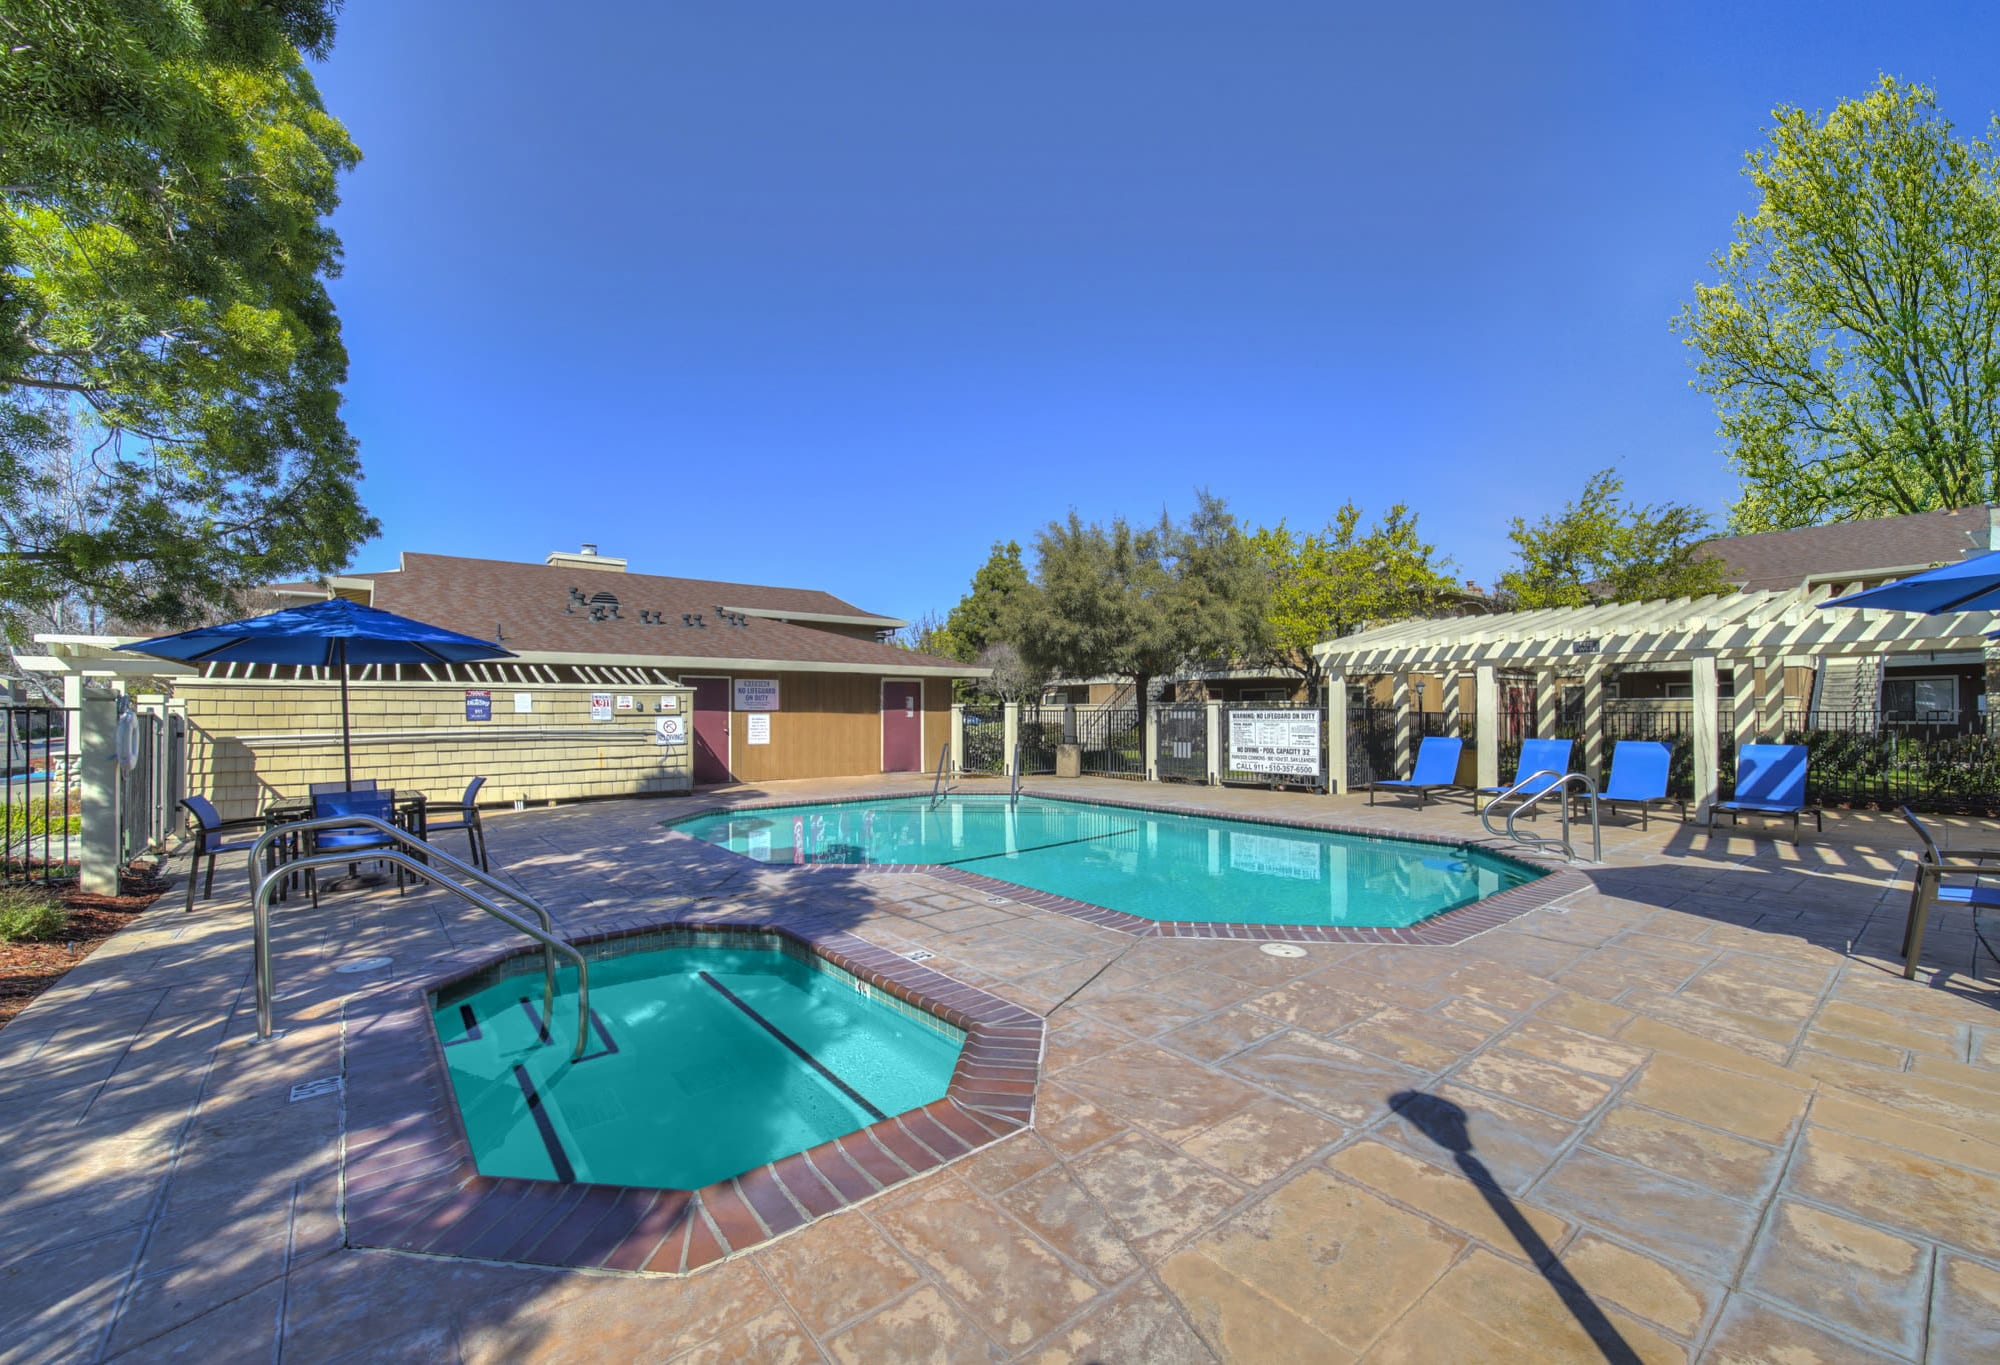 Pool and spa with lounge chairs and poolside BBQ in San Leandro, CA